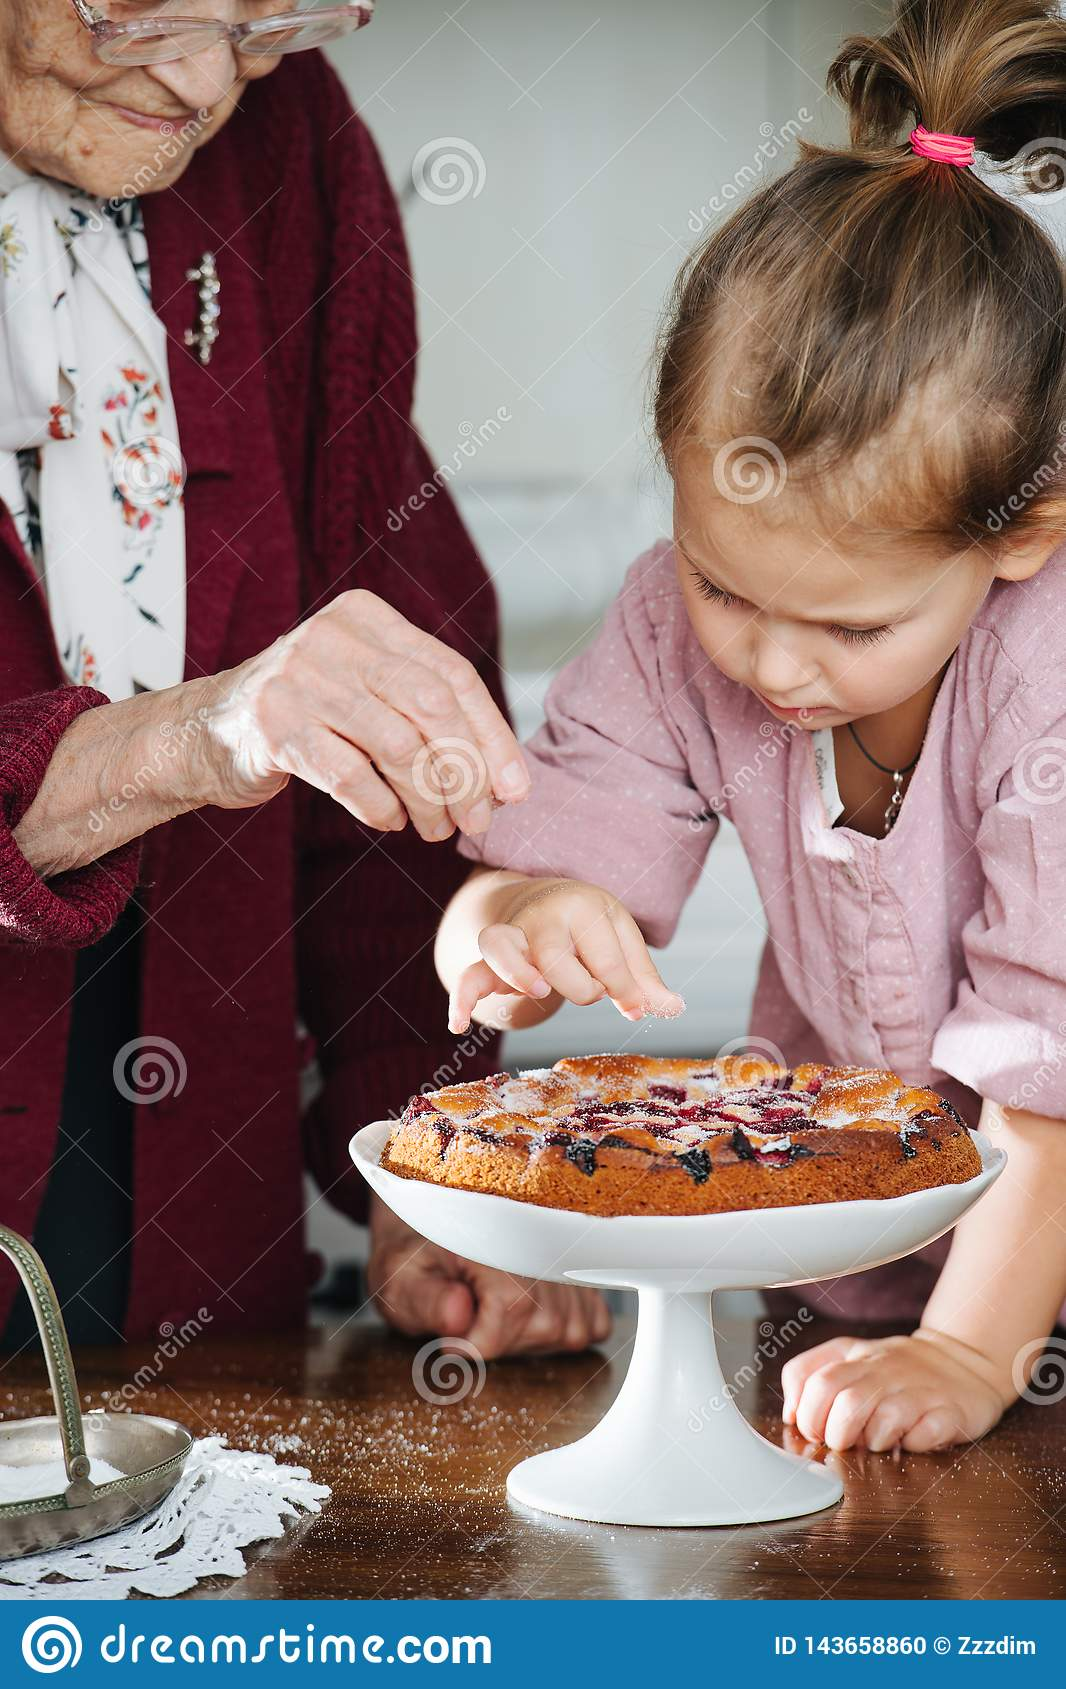 Senior woman along with her granddaughter pouring powdered sugar on tasty pie